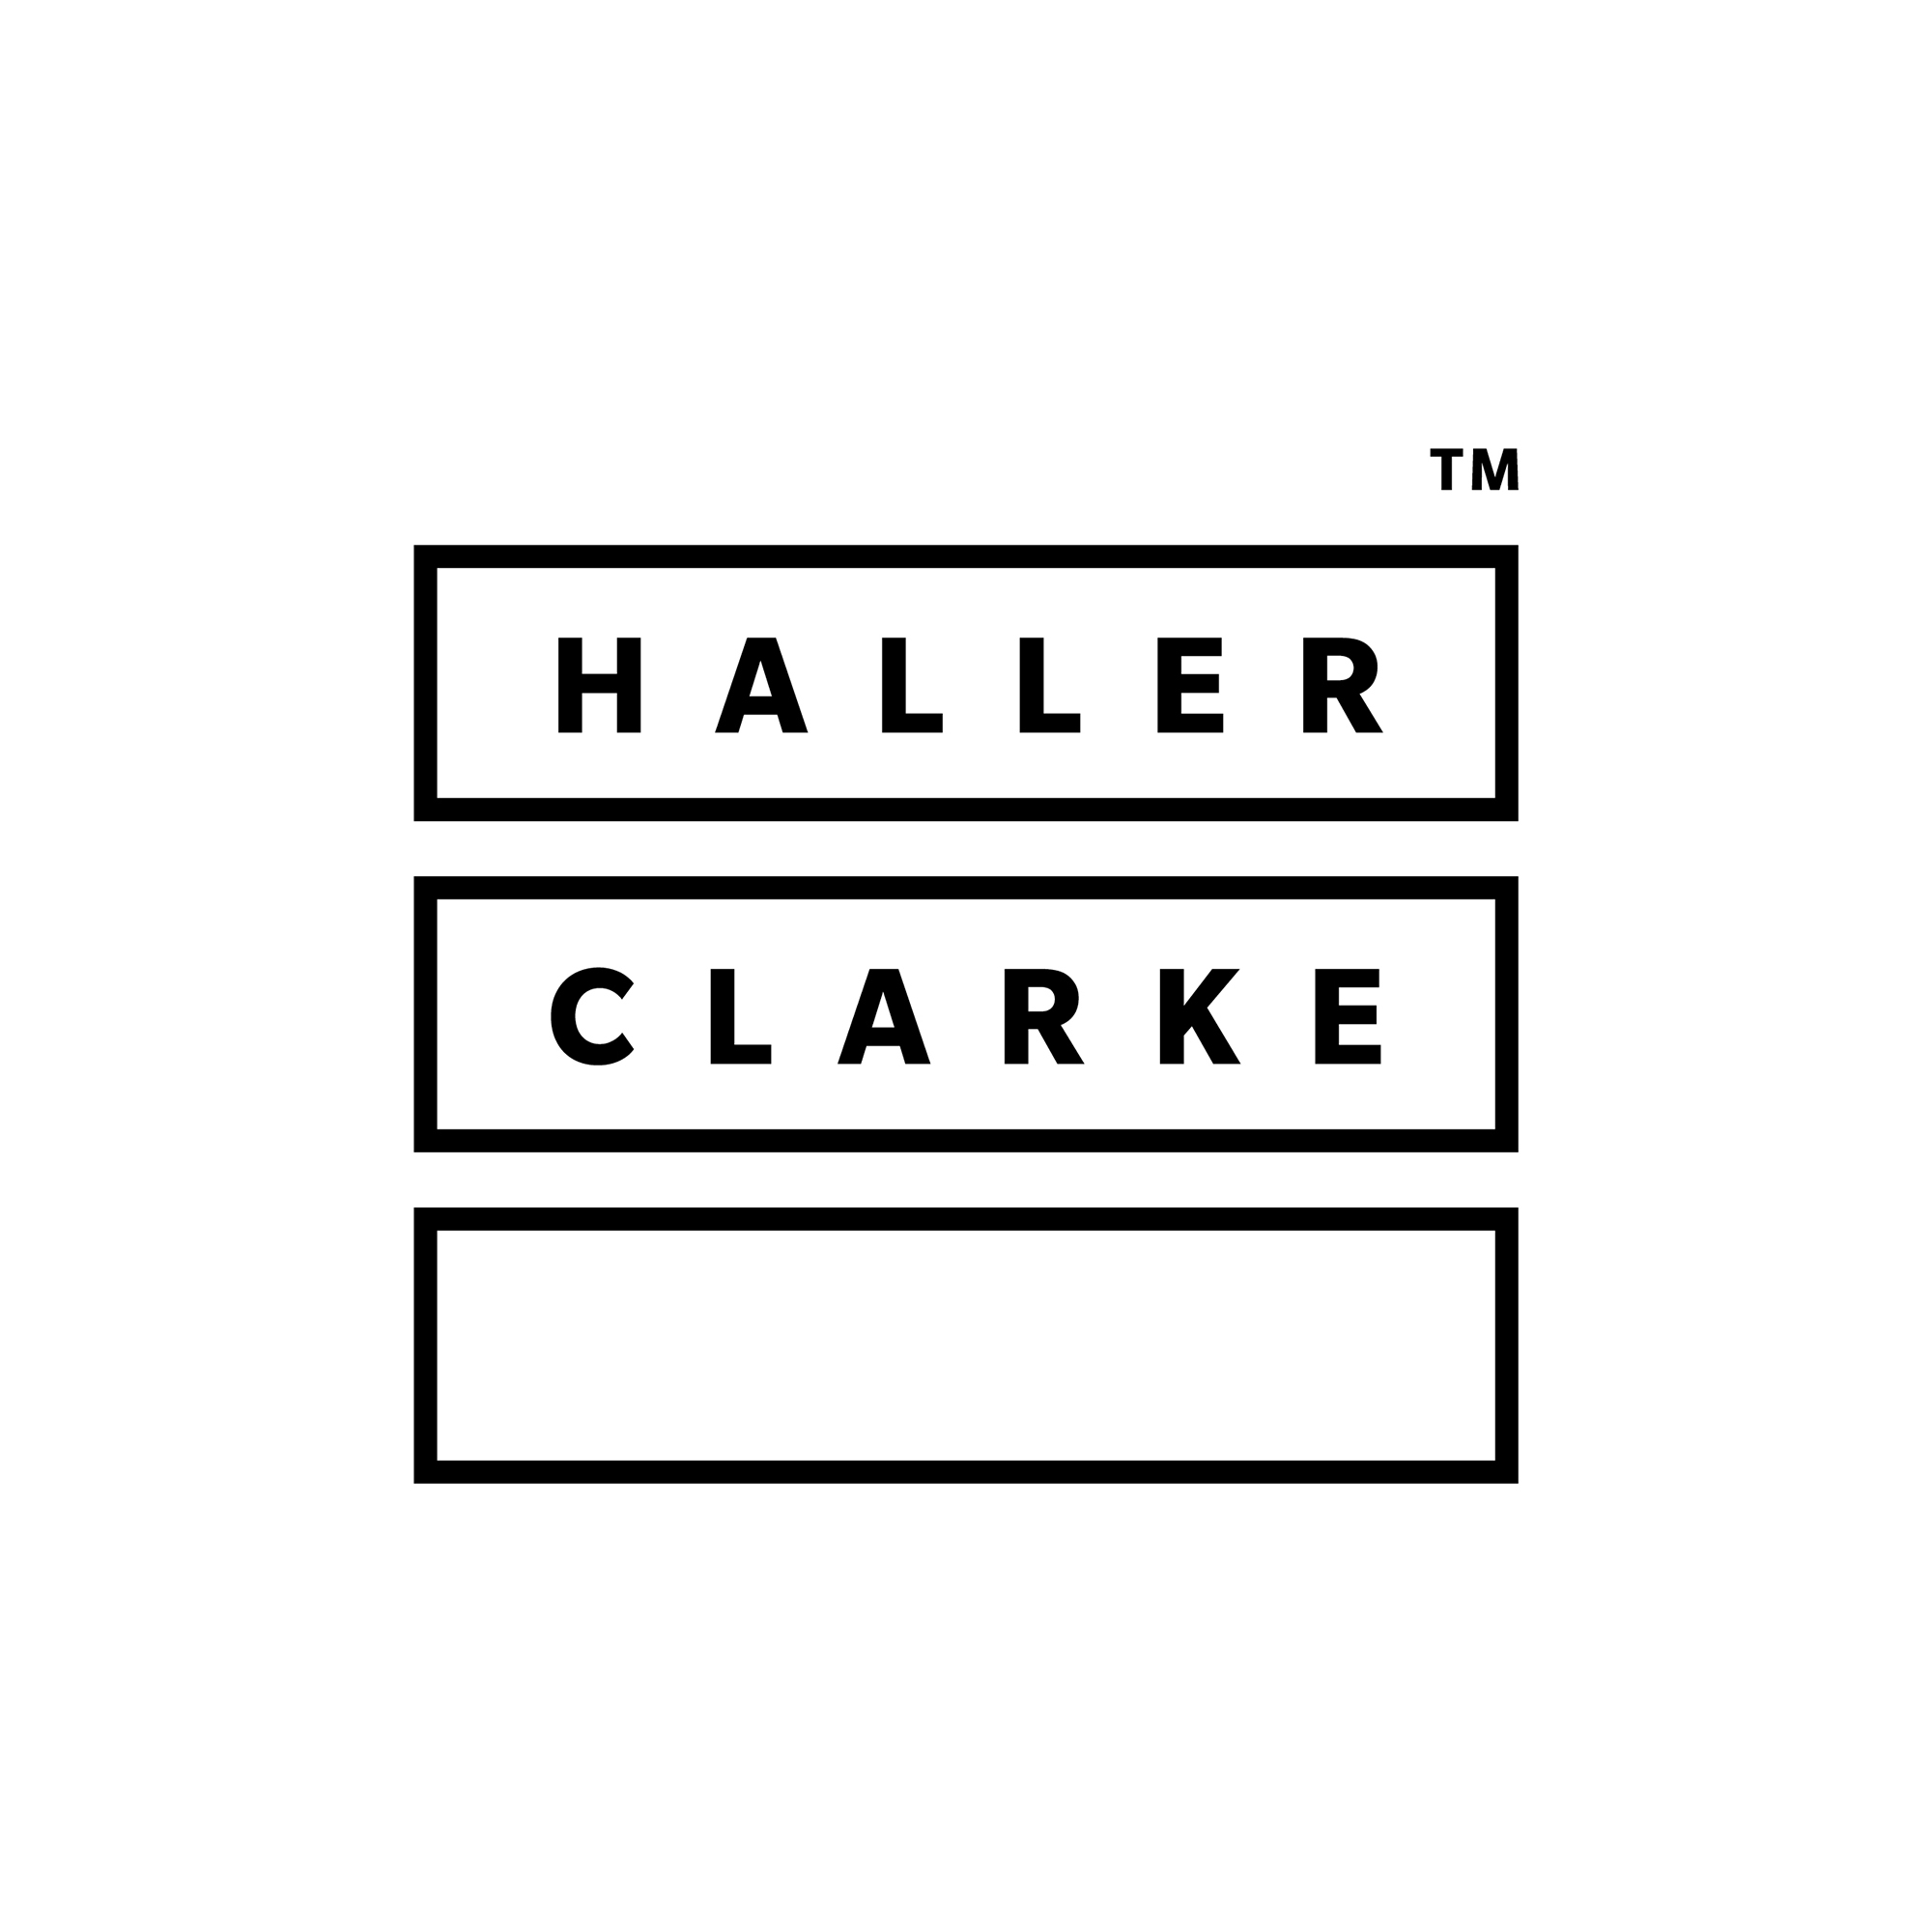 Cover image: Haller Clarke Identity